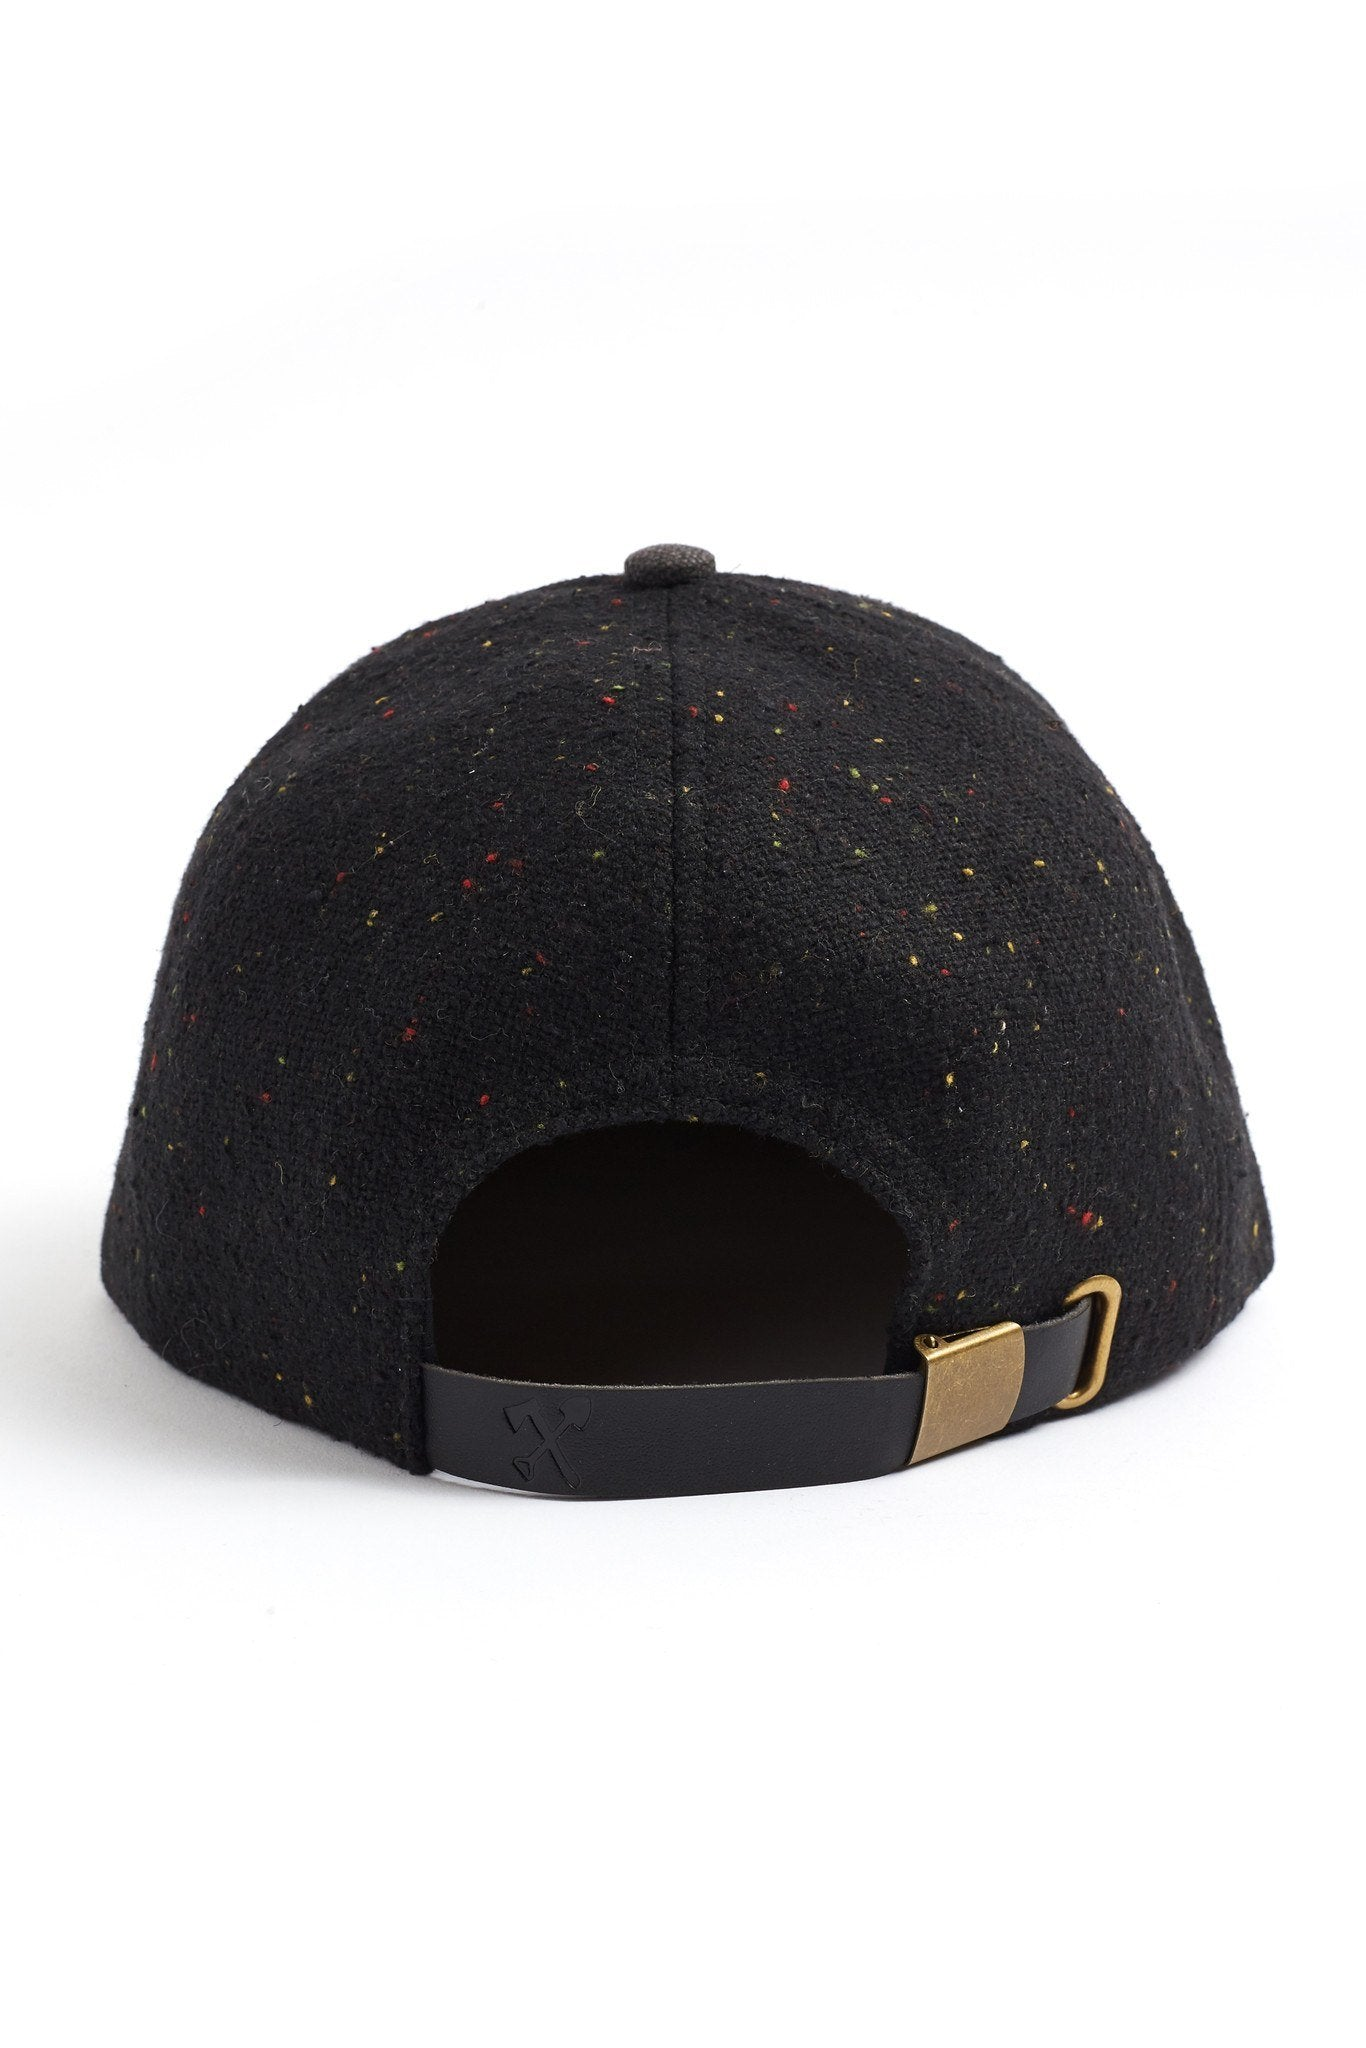 Hats - Travis Flat Brim Hat